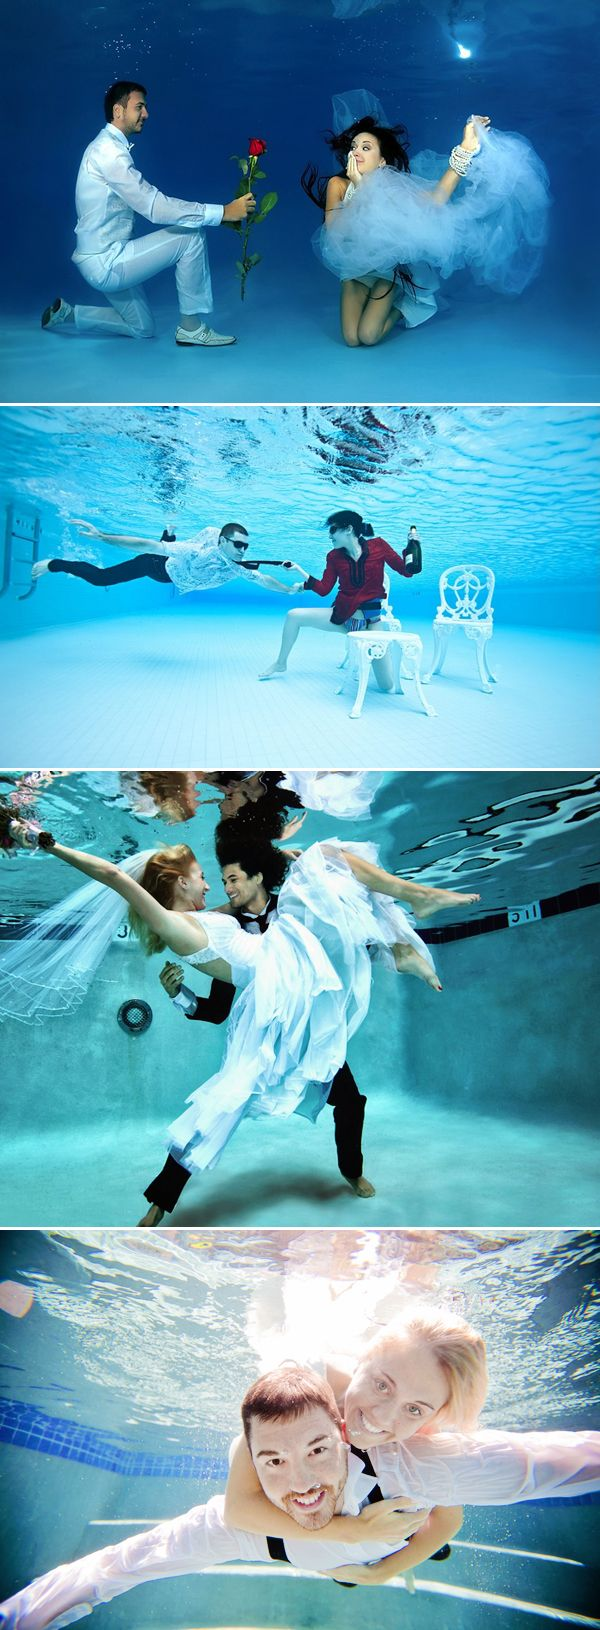 29 Funny Underwater Engagement Photo Ideas | http://www.deerpearlflowers.com/29-funny-underwater-engagement-photo-ideas/